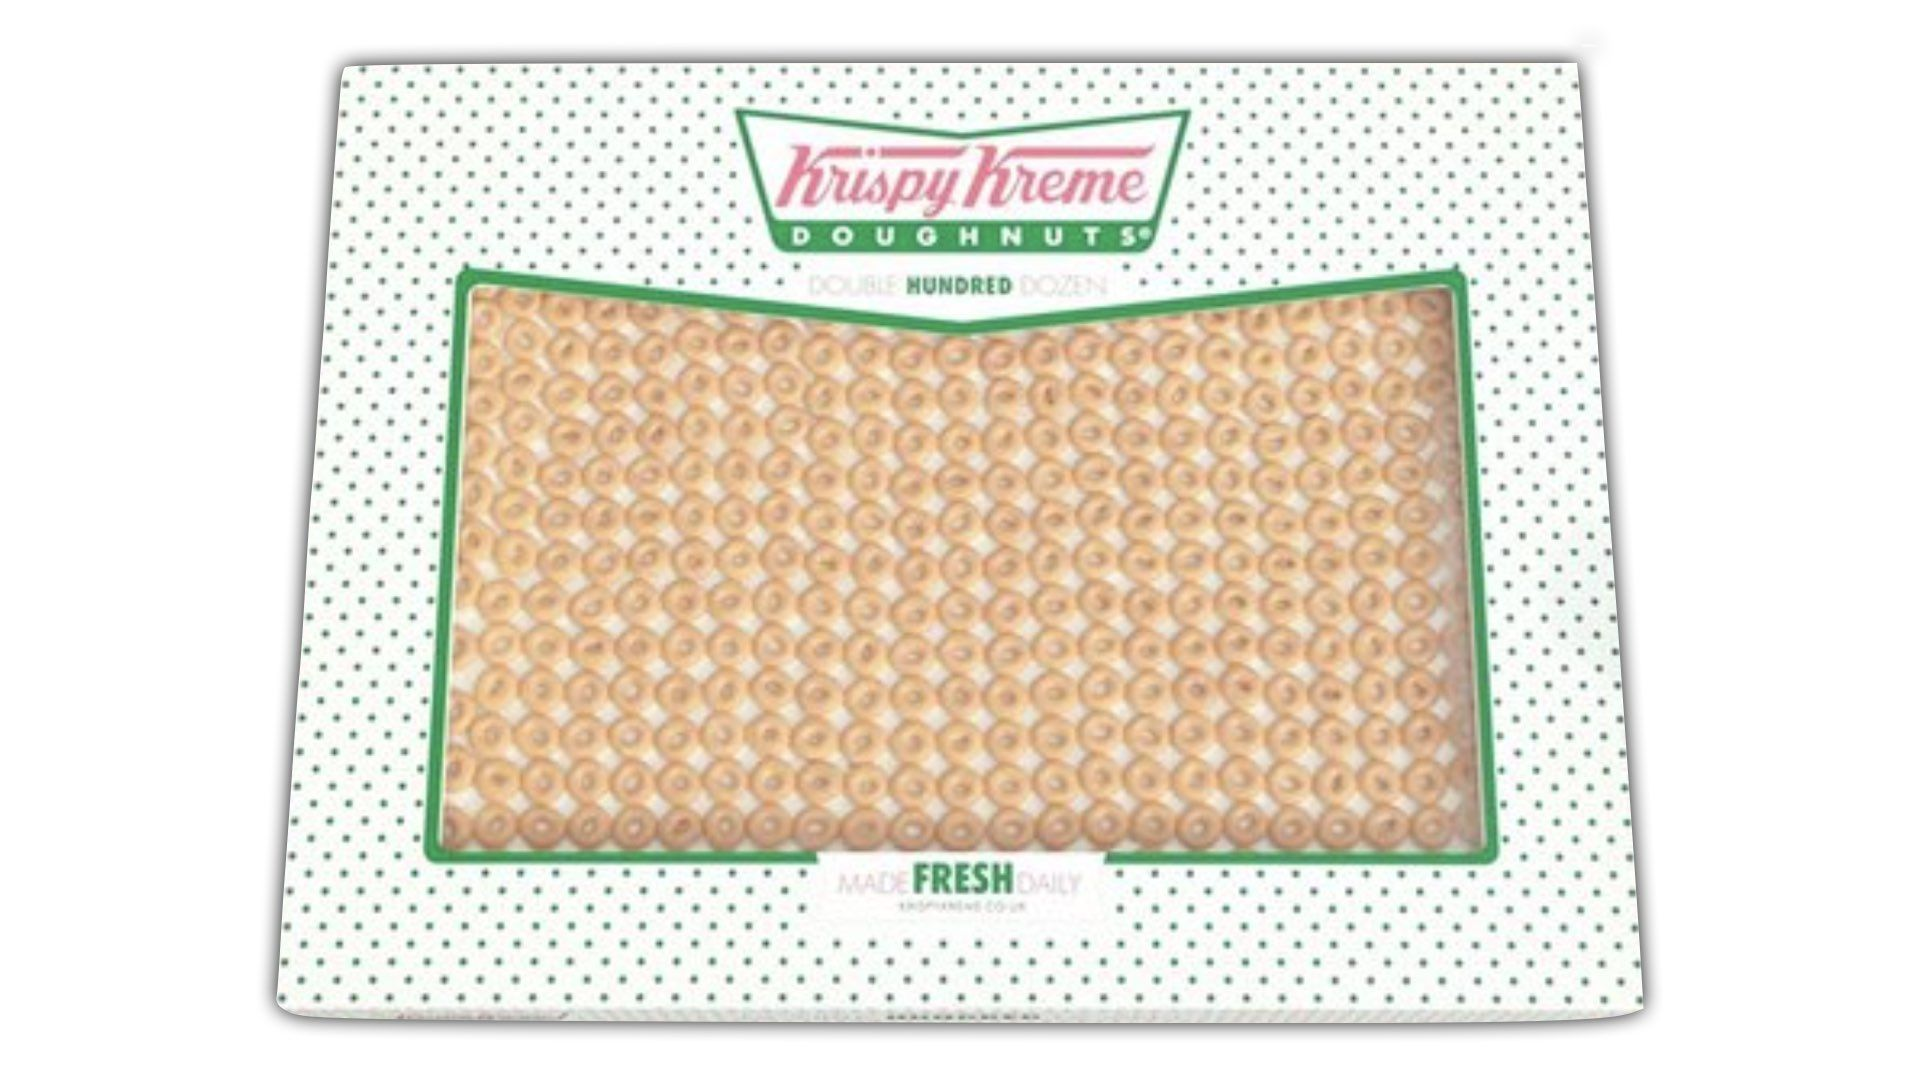 Check Out This Video Of Krispy Kreme Donuts And That Huge